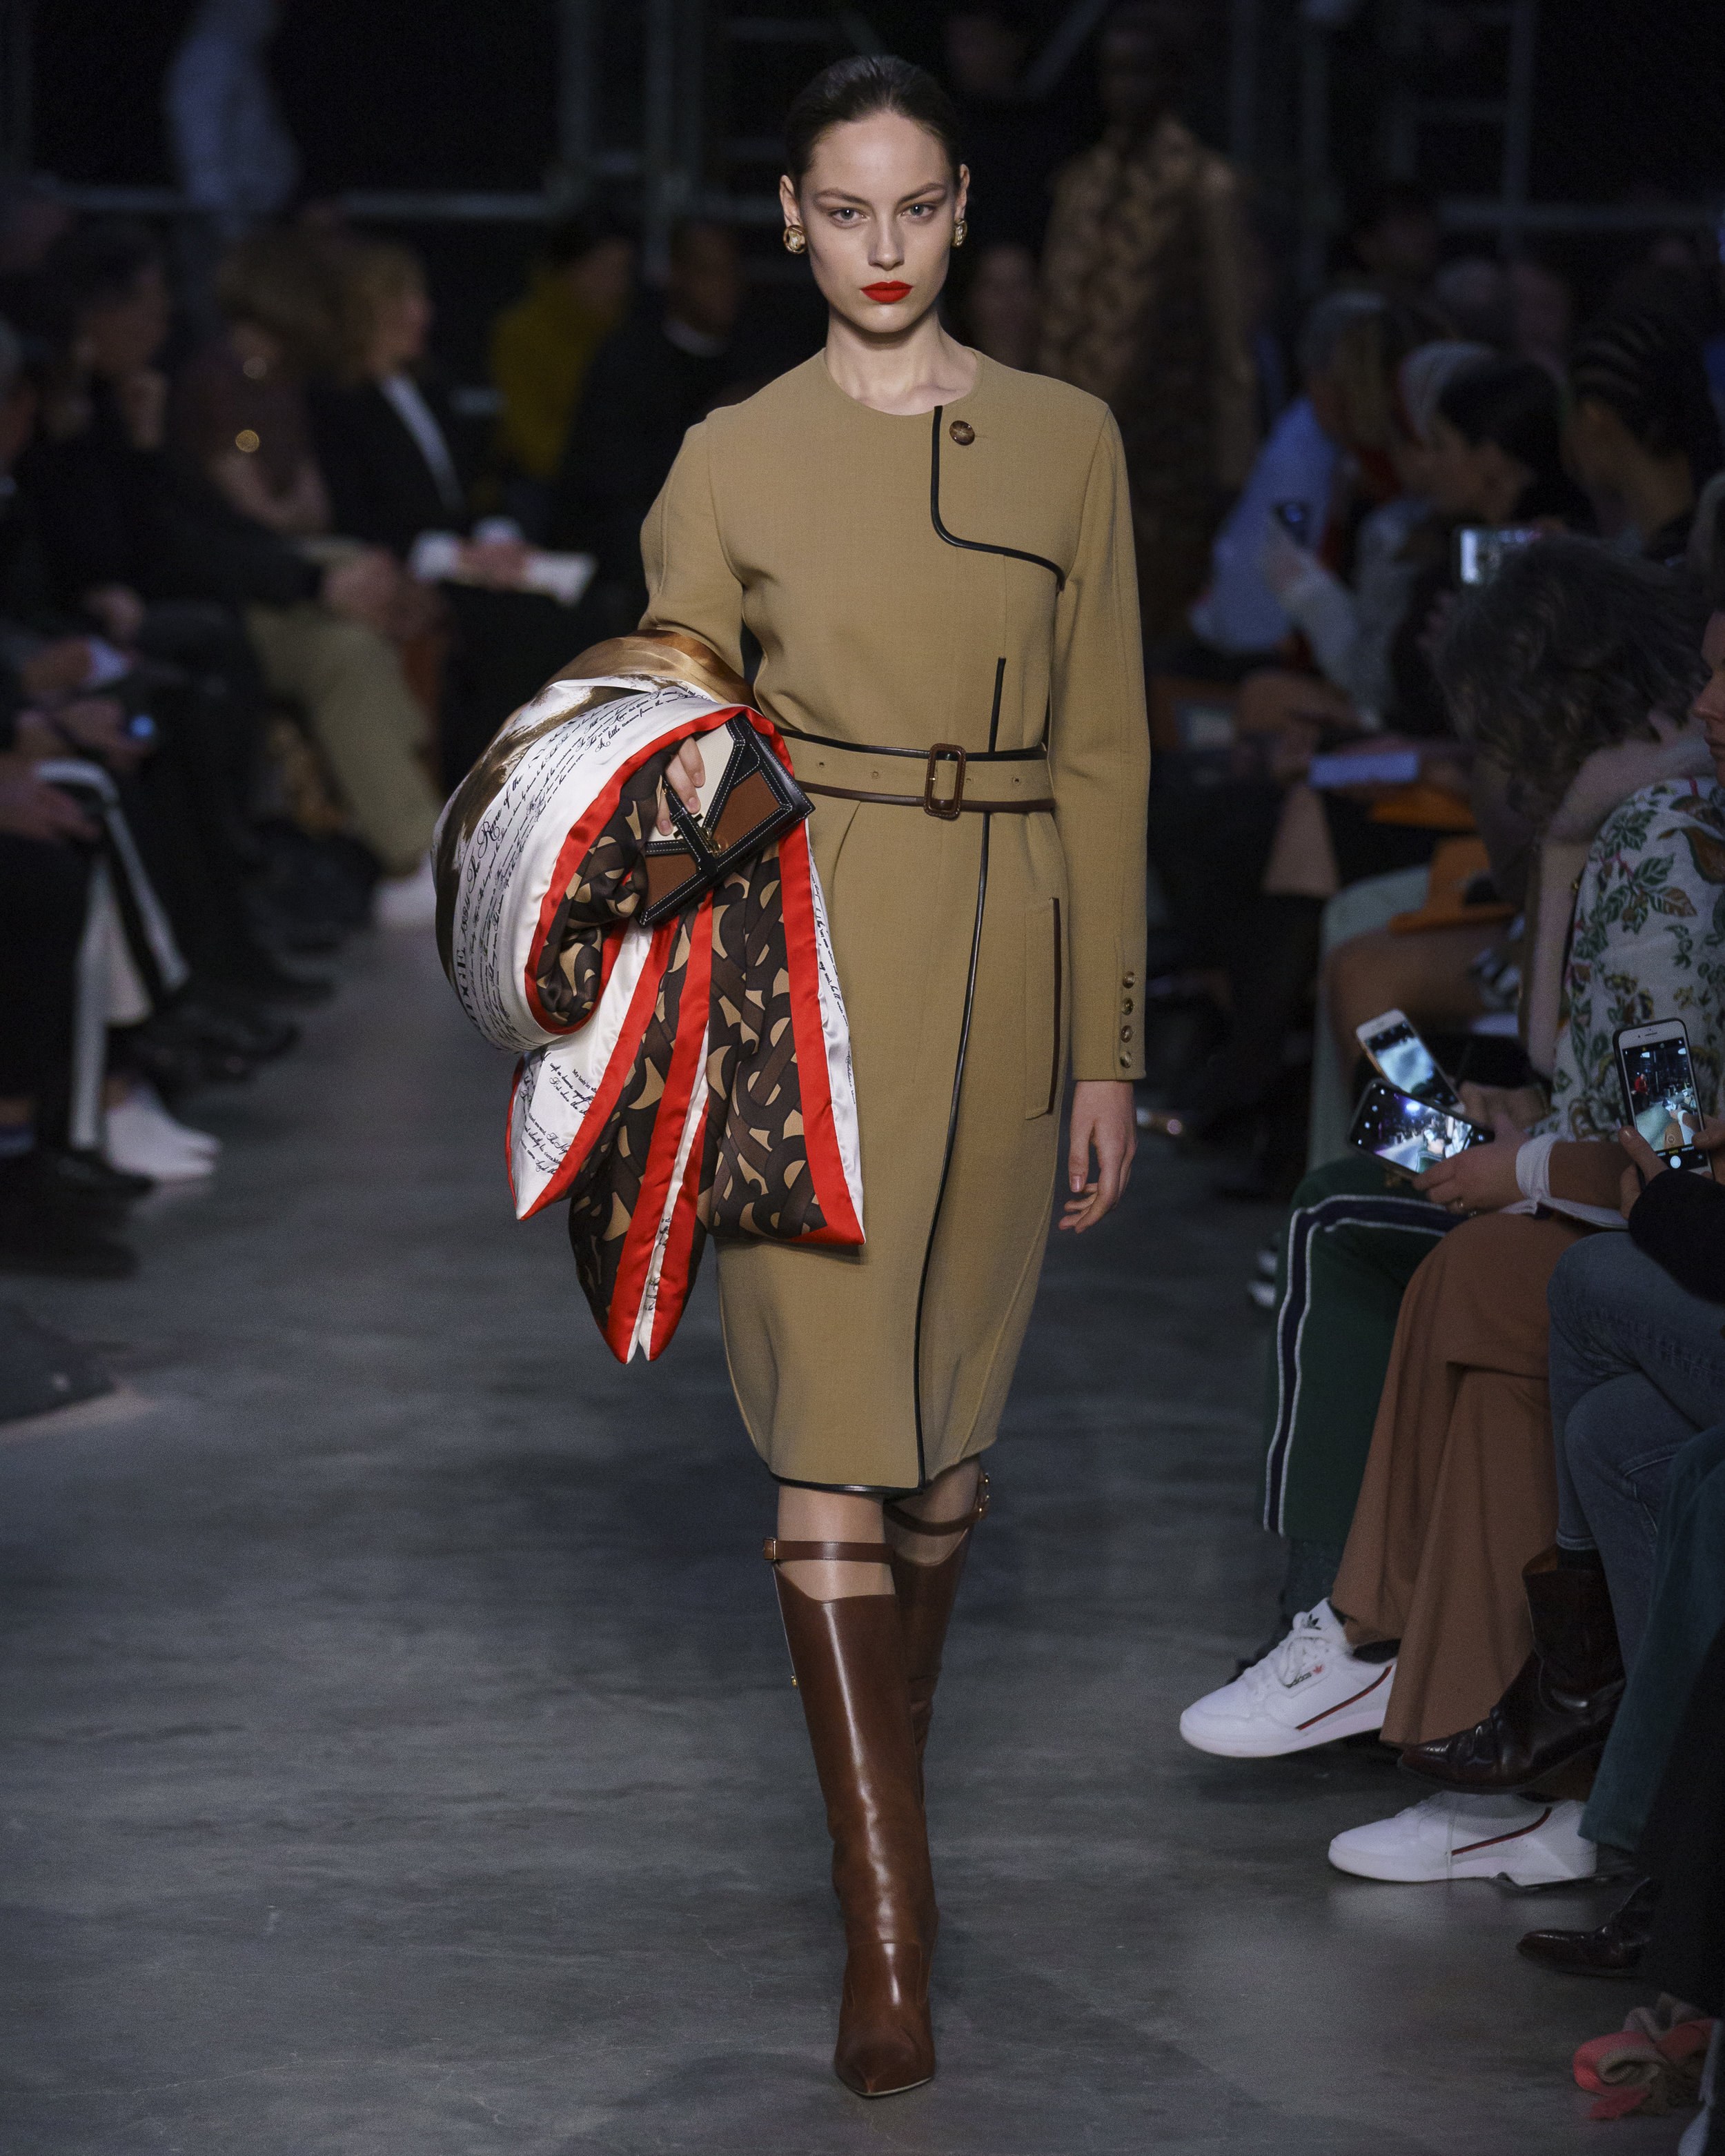 Burberry Autumn_Winter 2019 Collection - Look 56.jpg